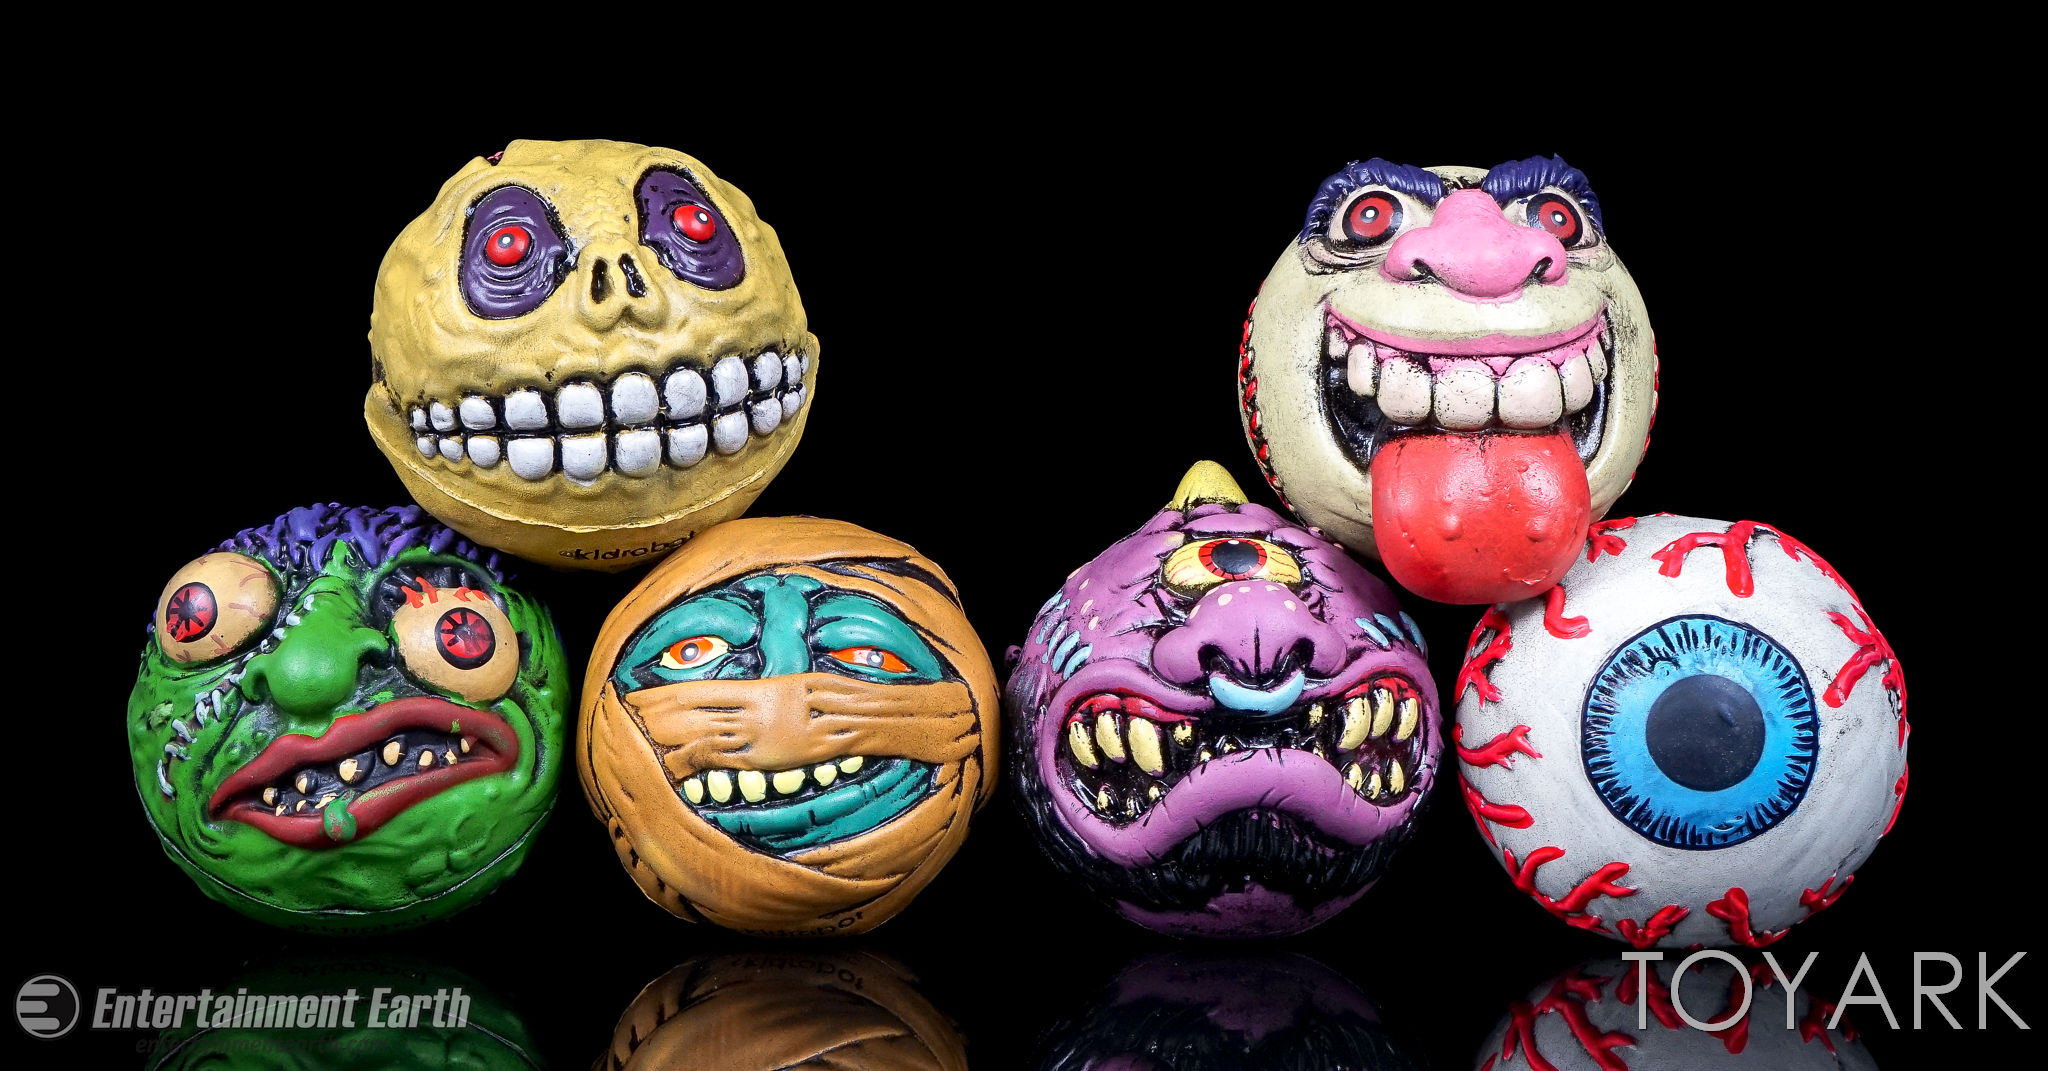 http://news.toyark.com/wp-content/uploads/sites/4/2017/03/Kidrobot-Foam-Madballs-007.jpg